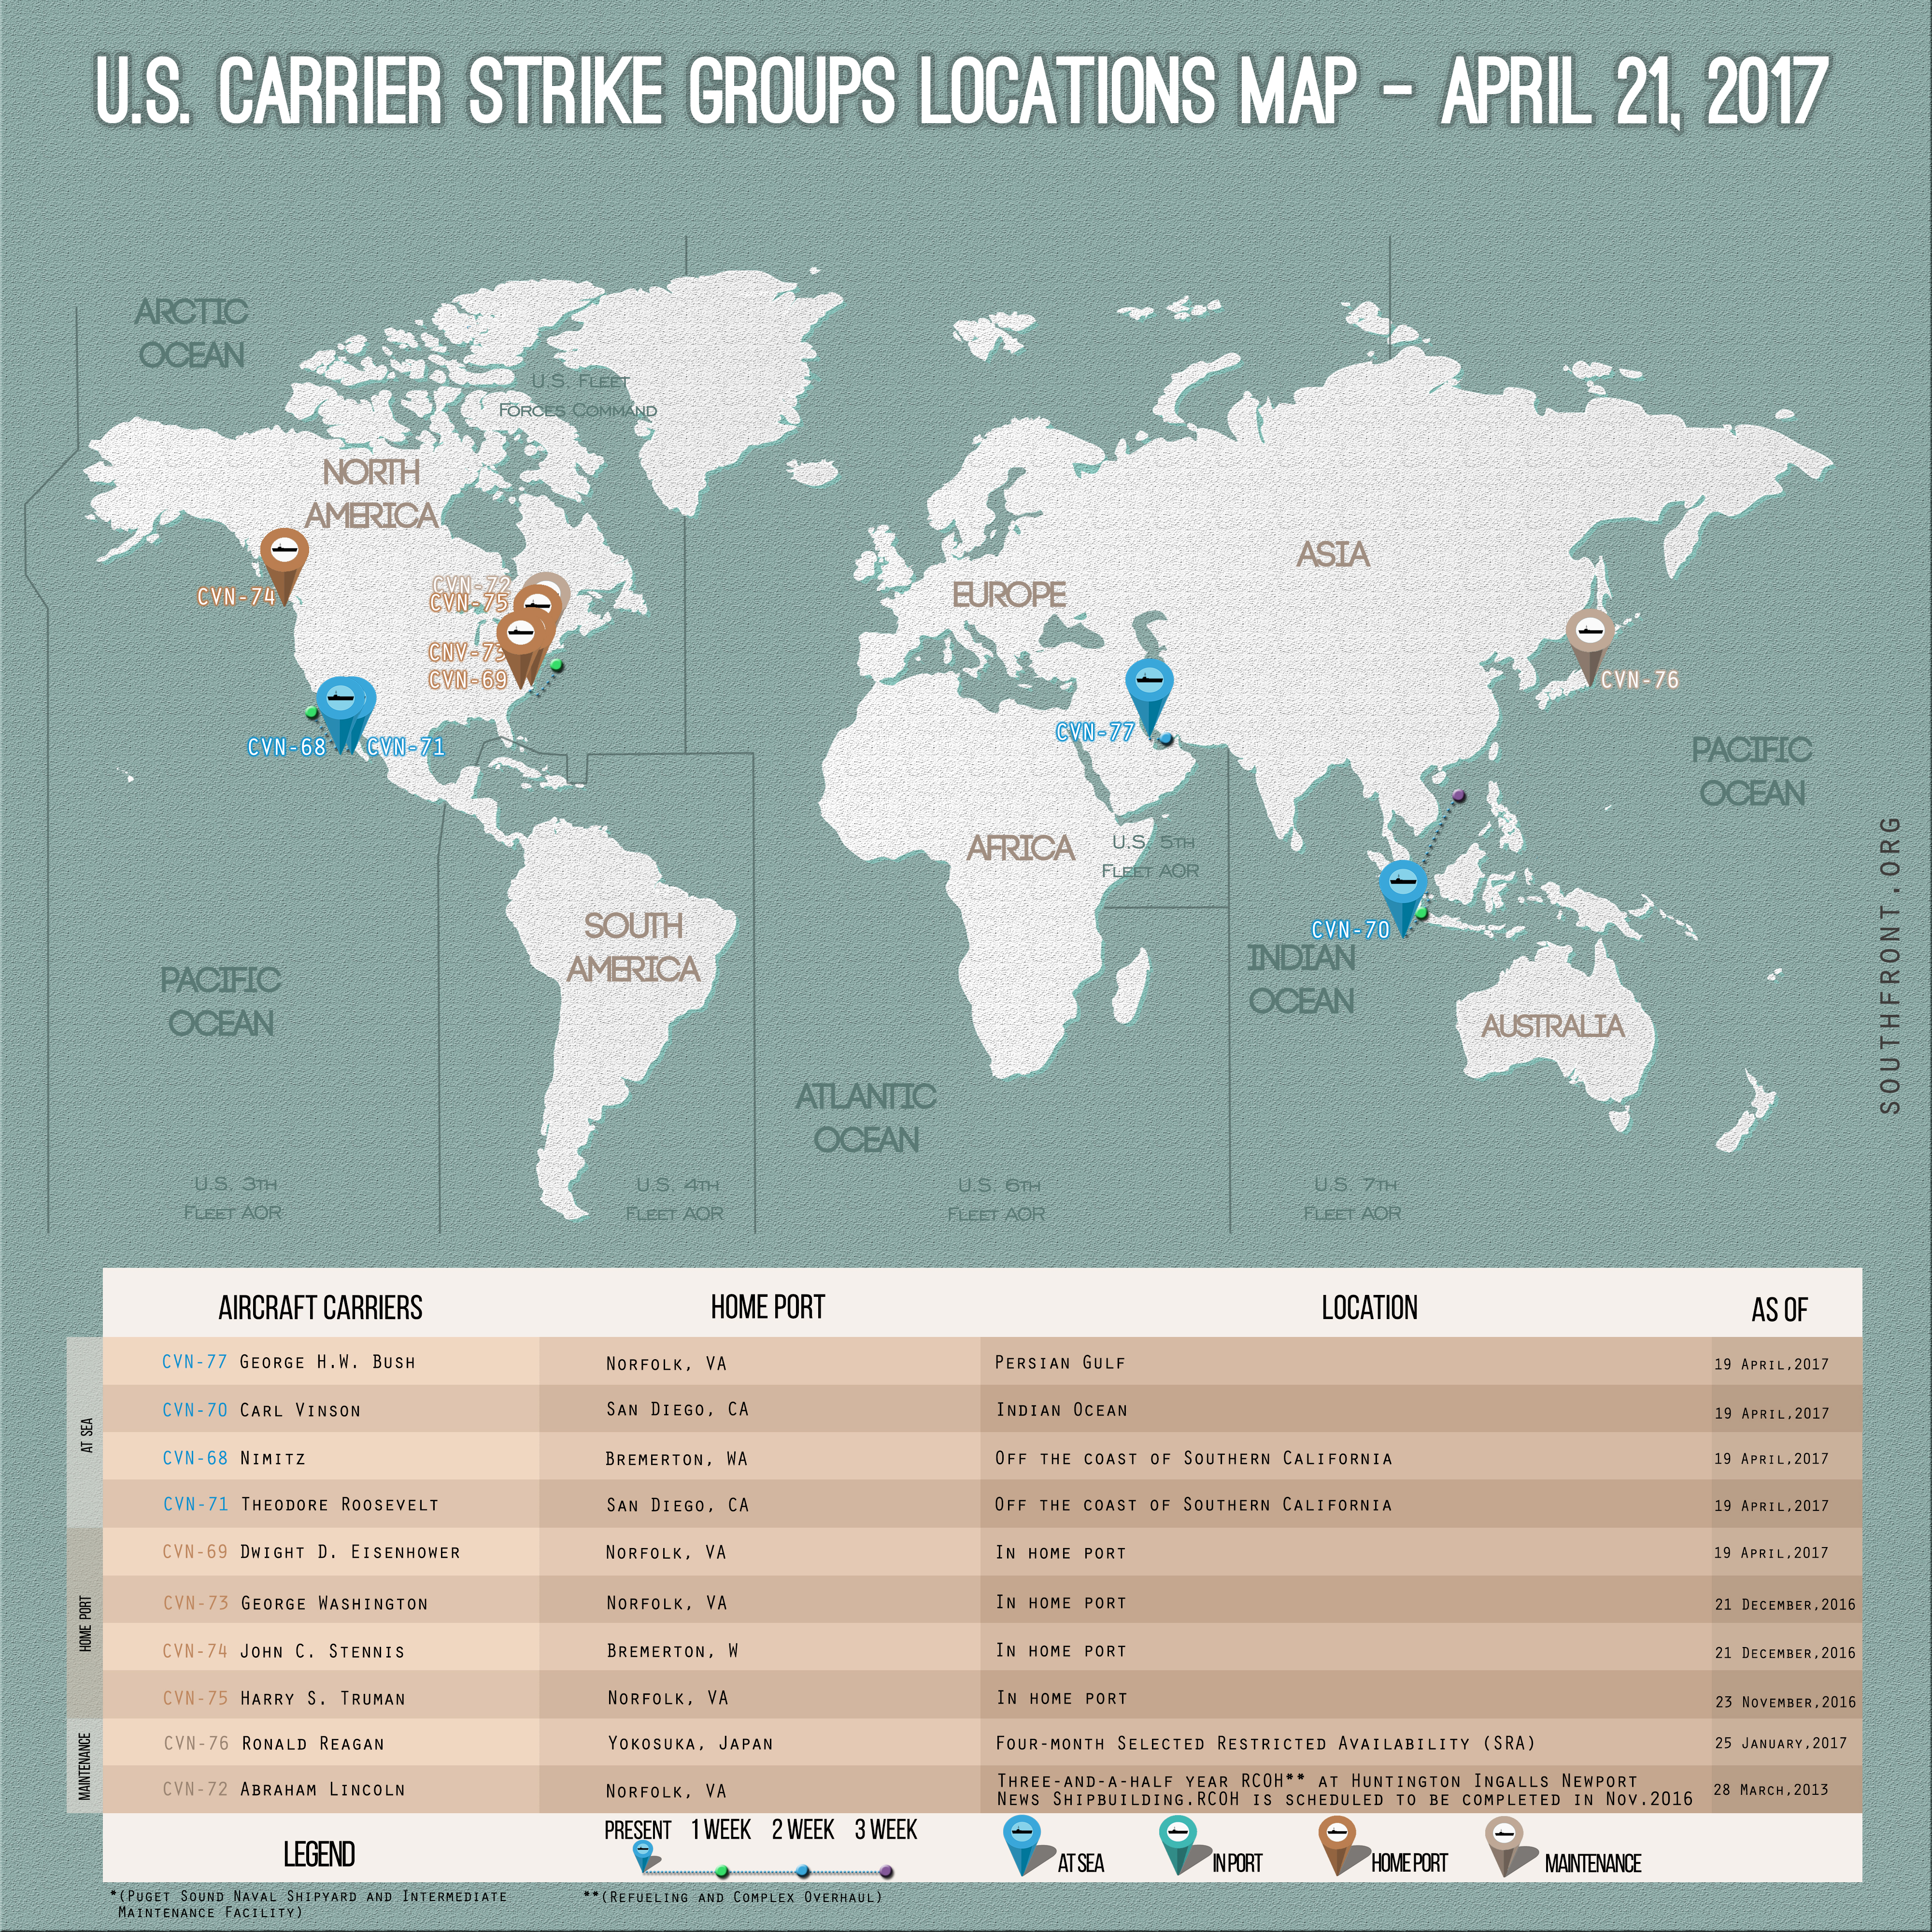 US Carrier Strike Groups Locations Map – April 21, 2017